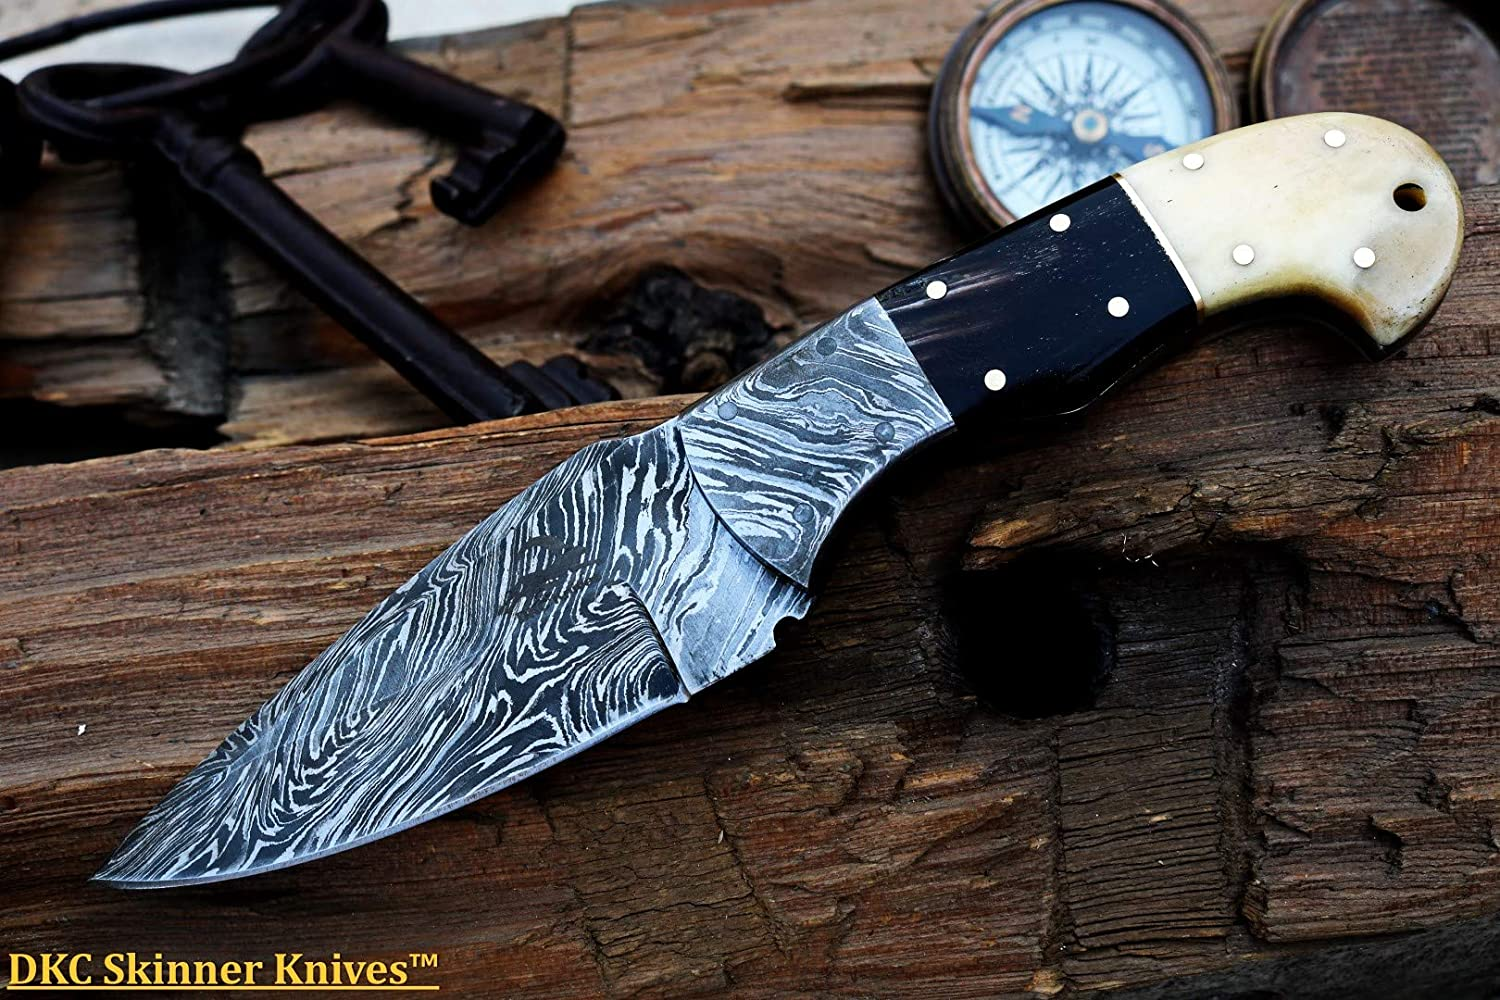 DKC Knives 3 6 18 Sale DKC-189 Mountain ELK Damascus Steel Knife Hunting Knife 8 Long, 4 Blade 8 oz Very Solid Knife